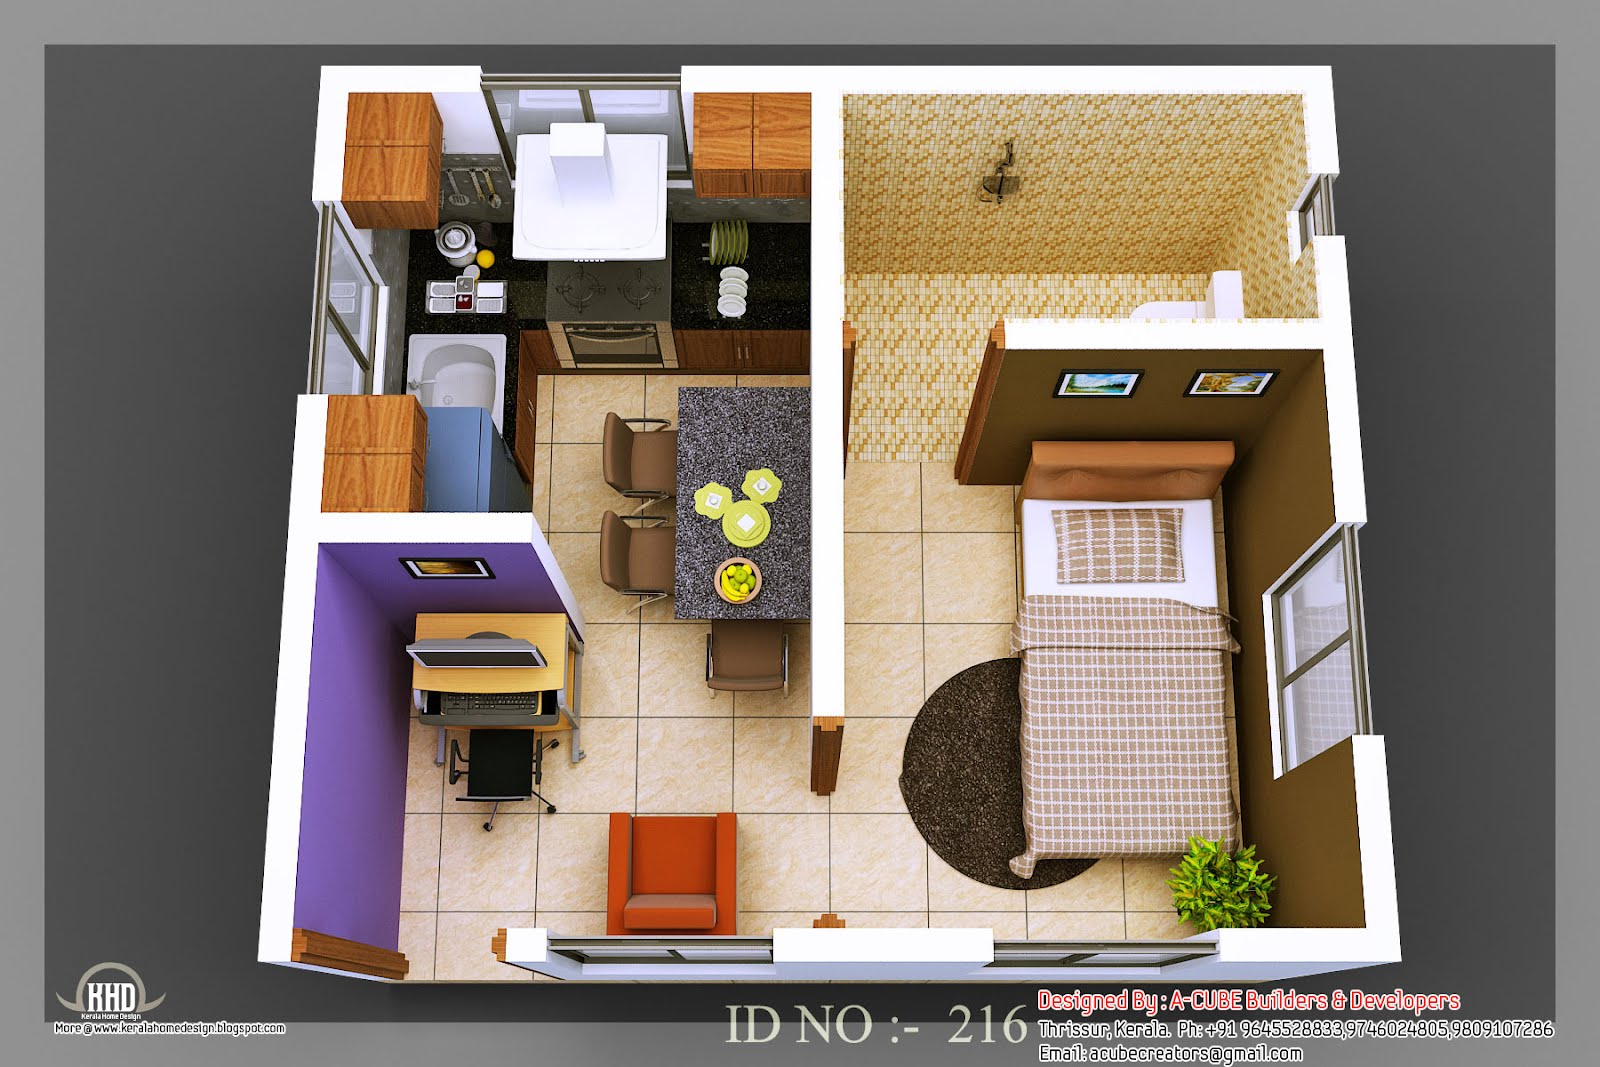 Home Design Ideas 3d: 3D Isometric Views Of Small House Plans